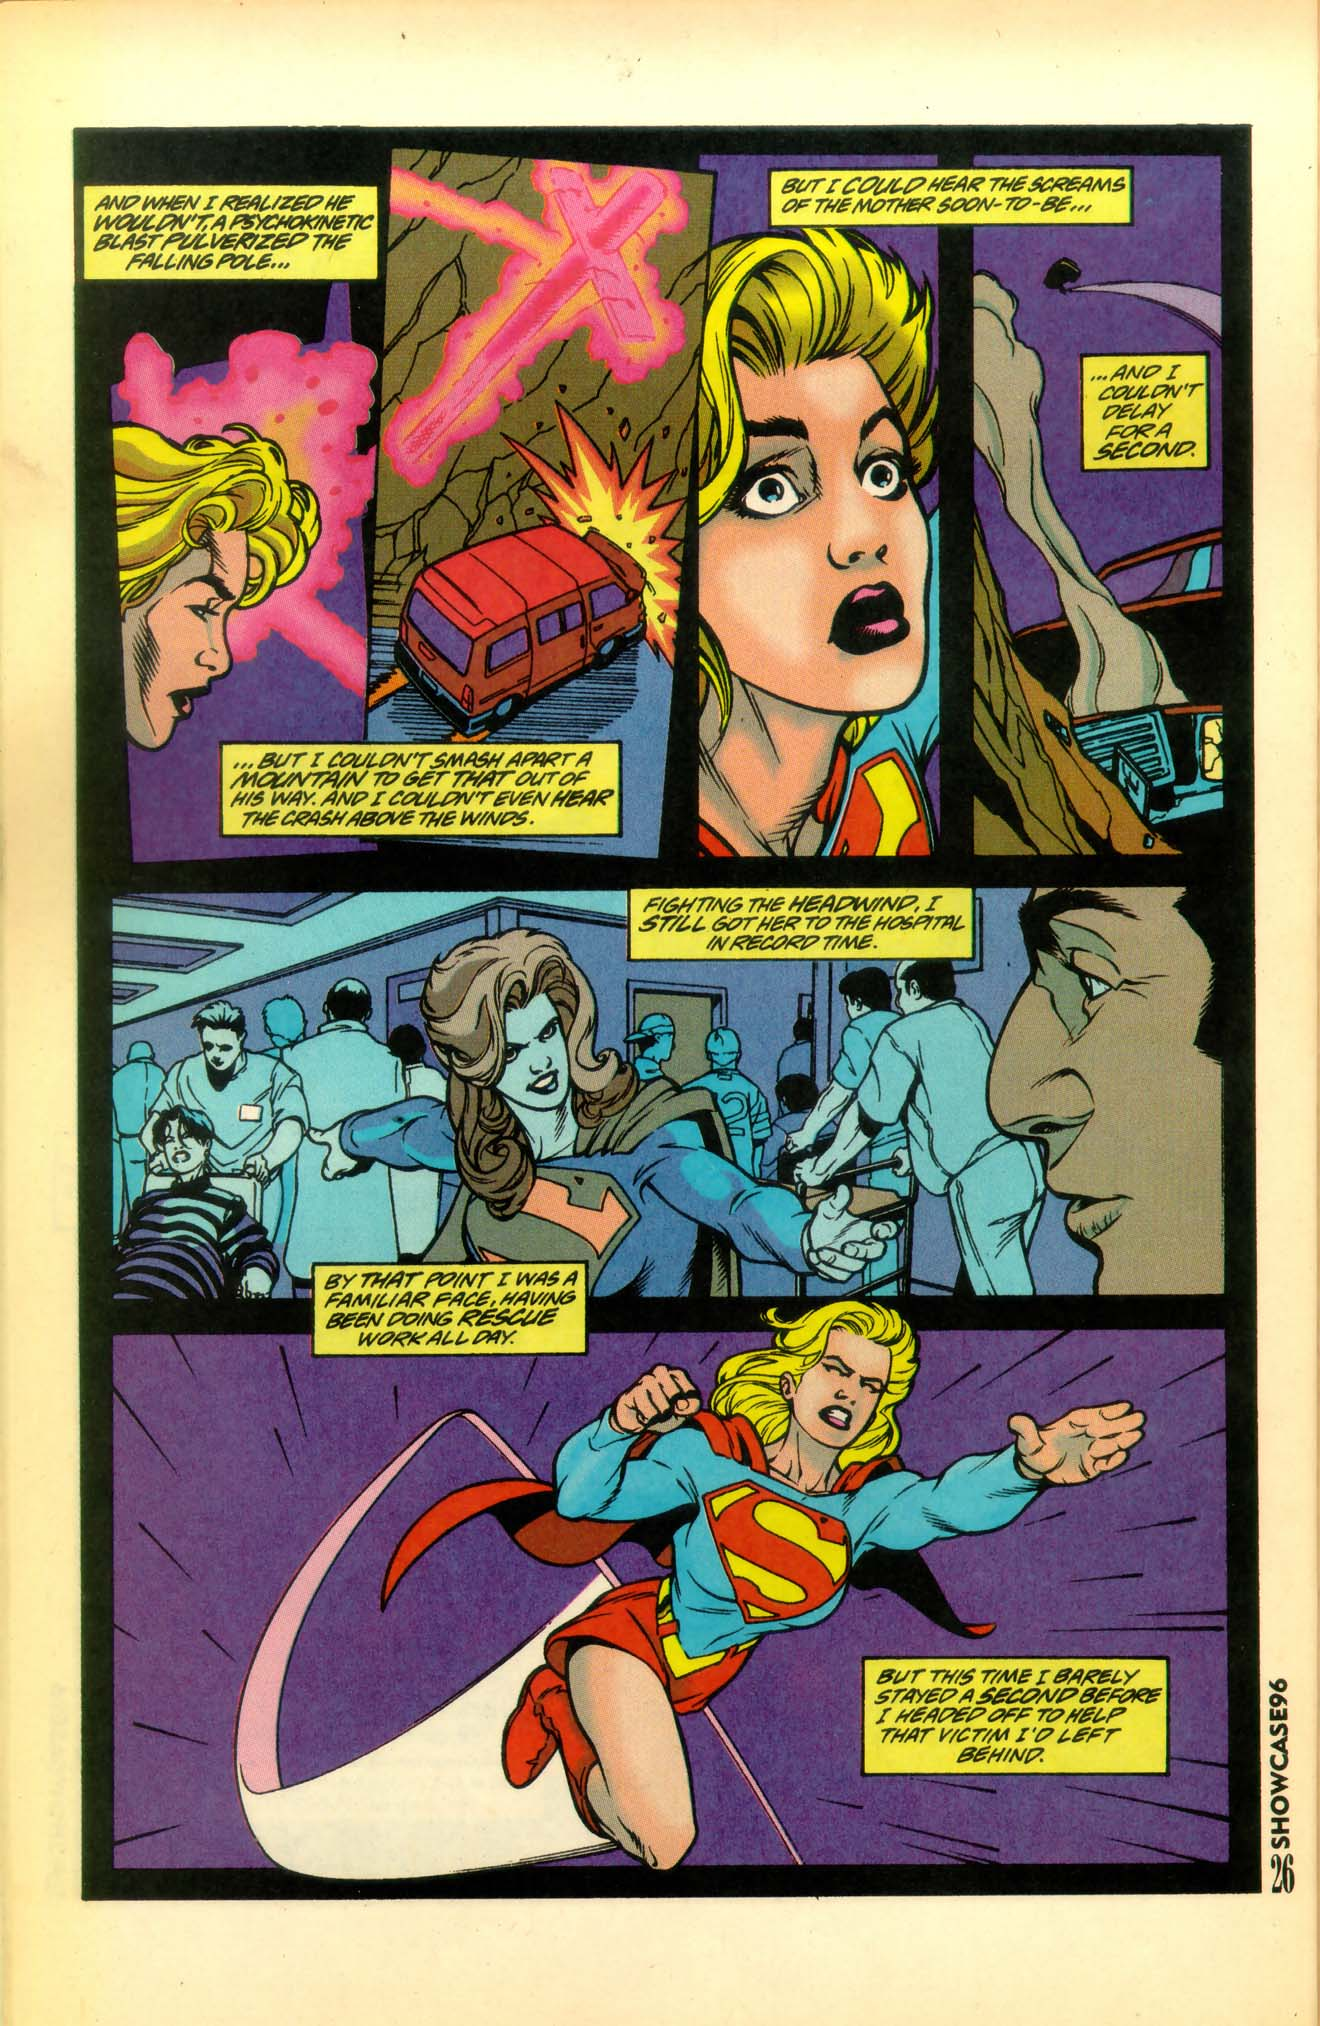 Read online Showcase '96 comic -  Issue #8 - 27